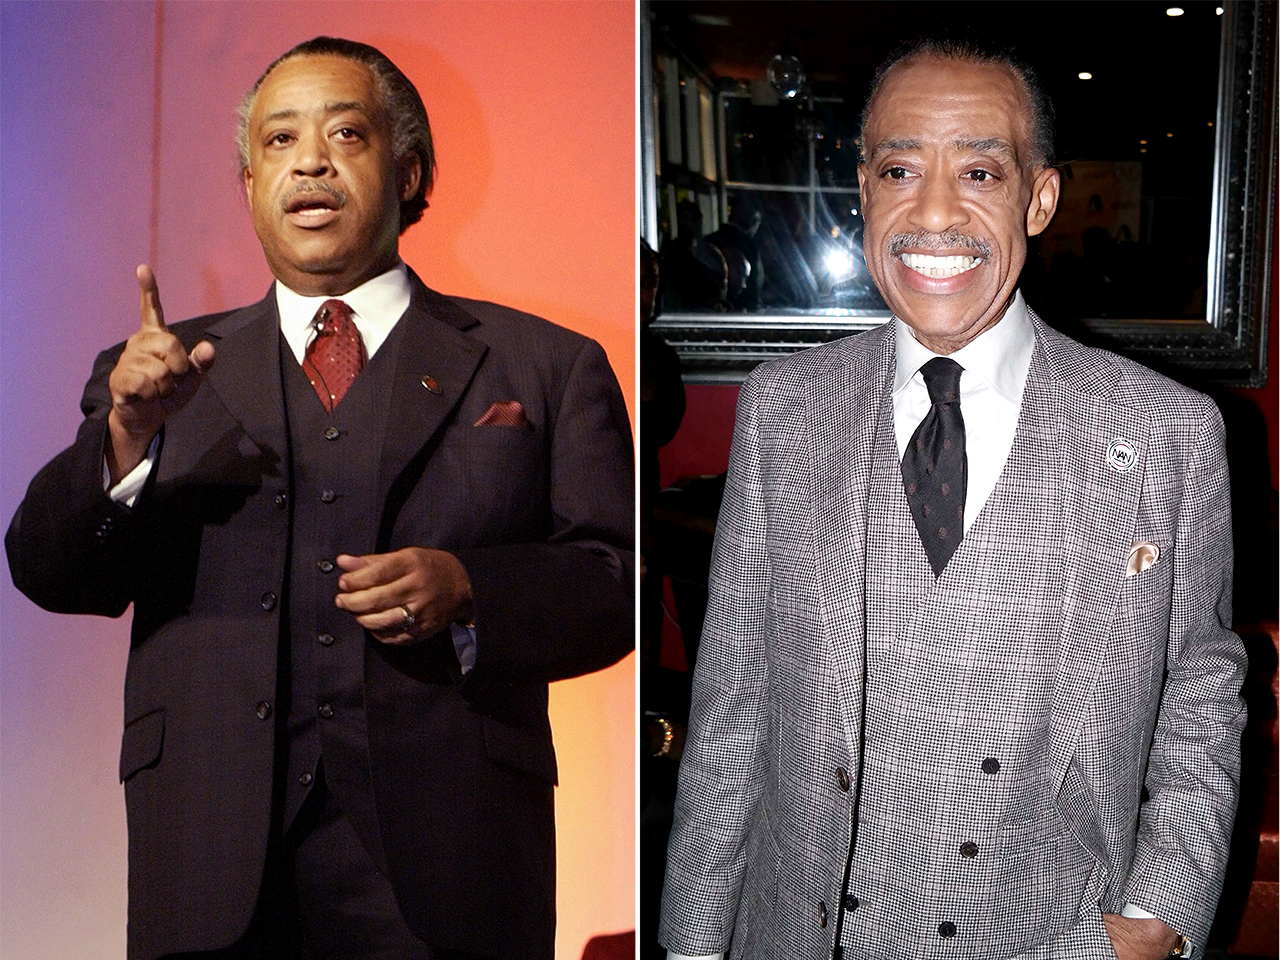 Al Sharpton's drastic weight loss